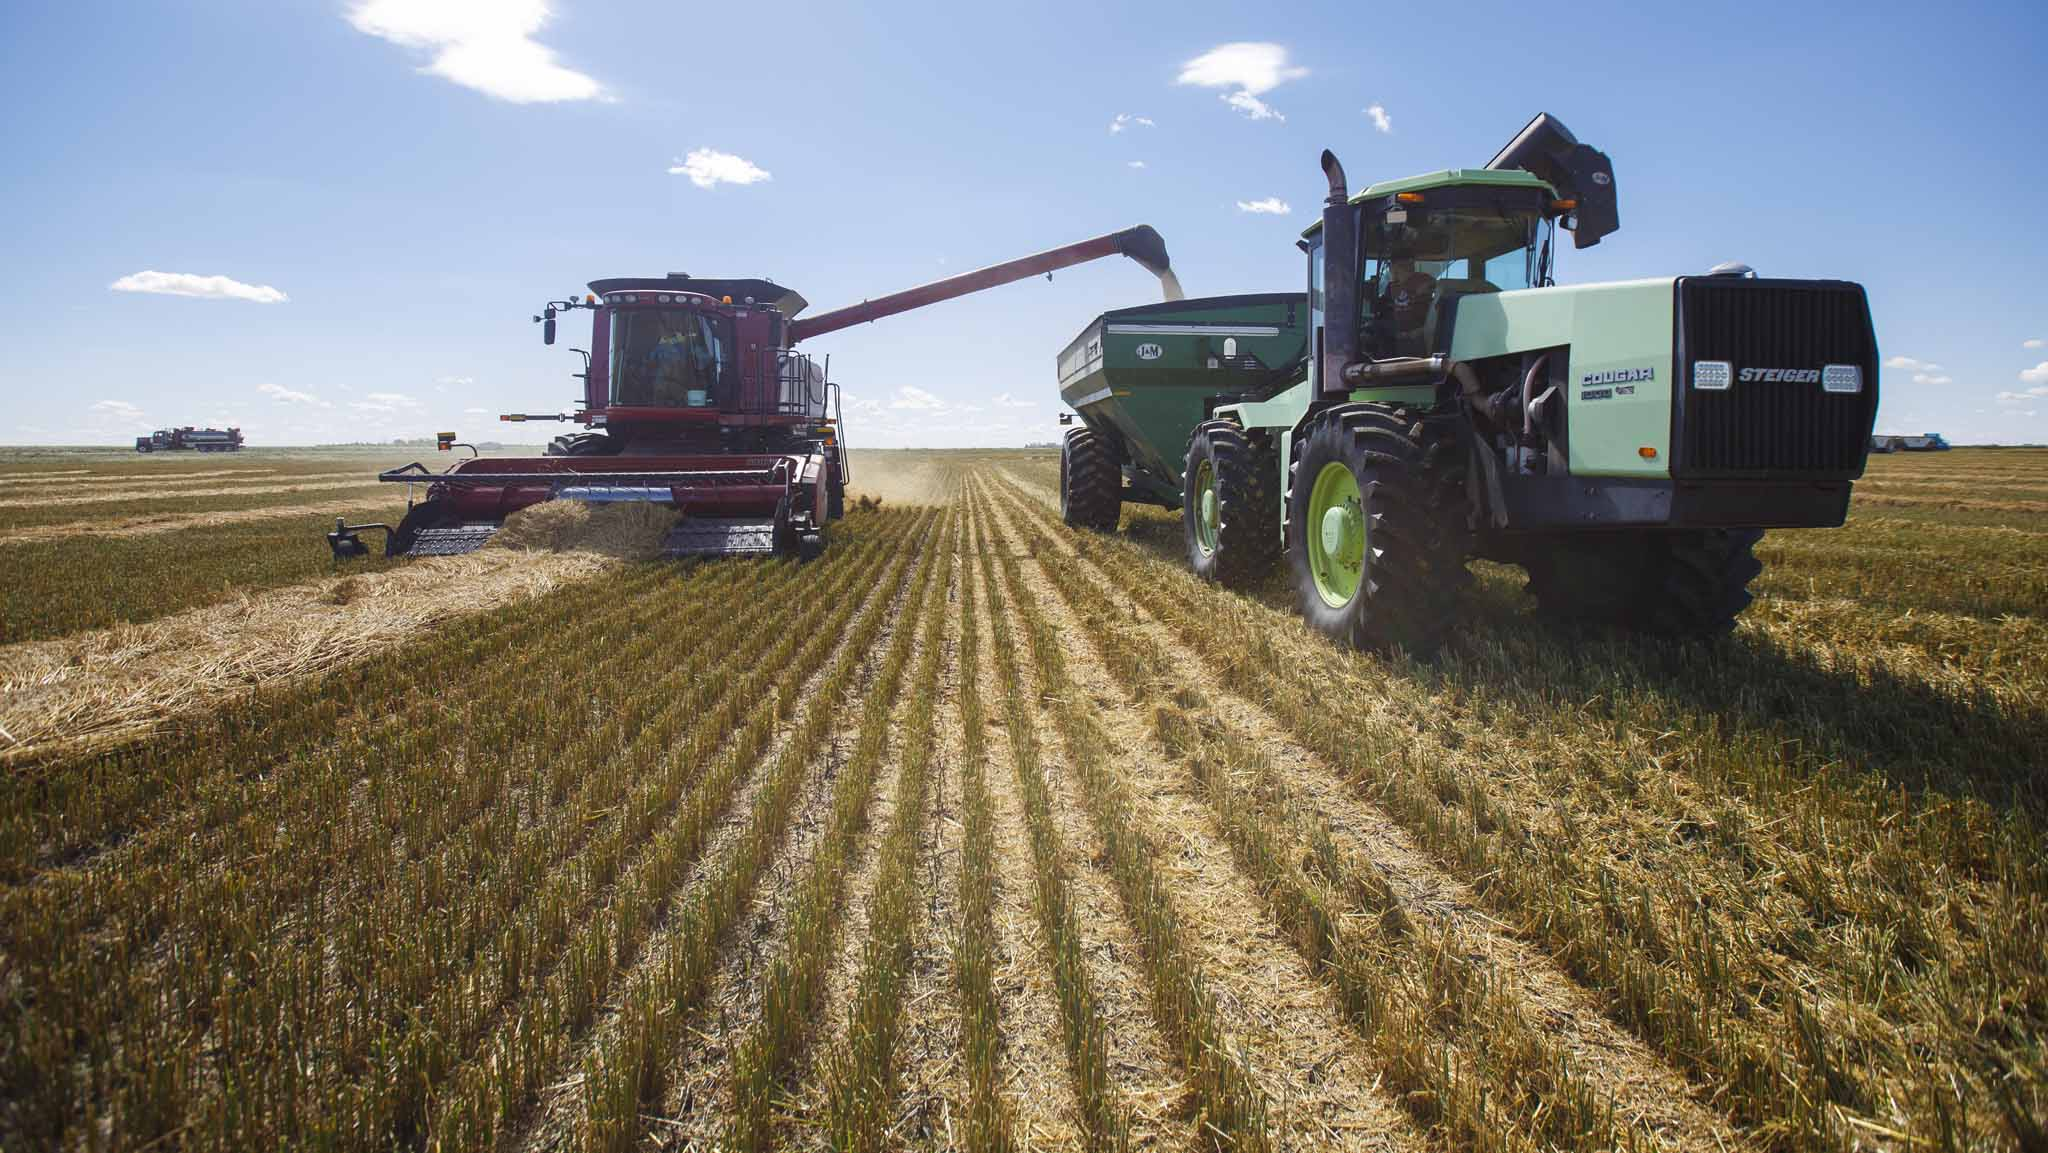 Colin expects to harvest 300,000 bushels over 4,000 acres this fall.